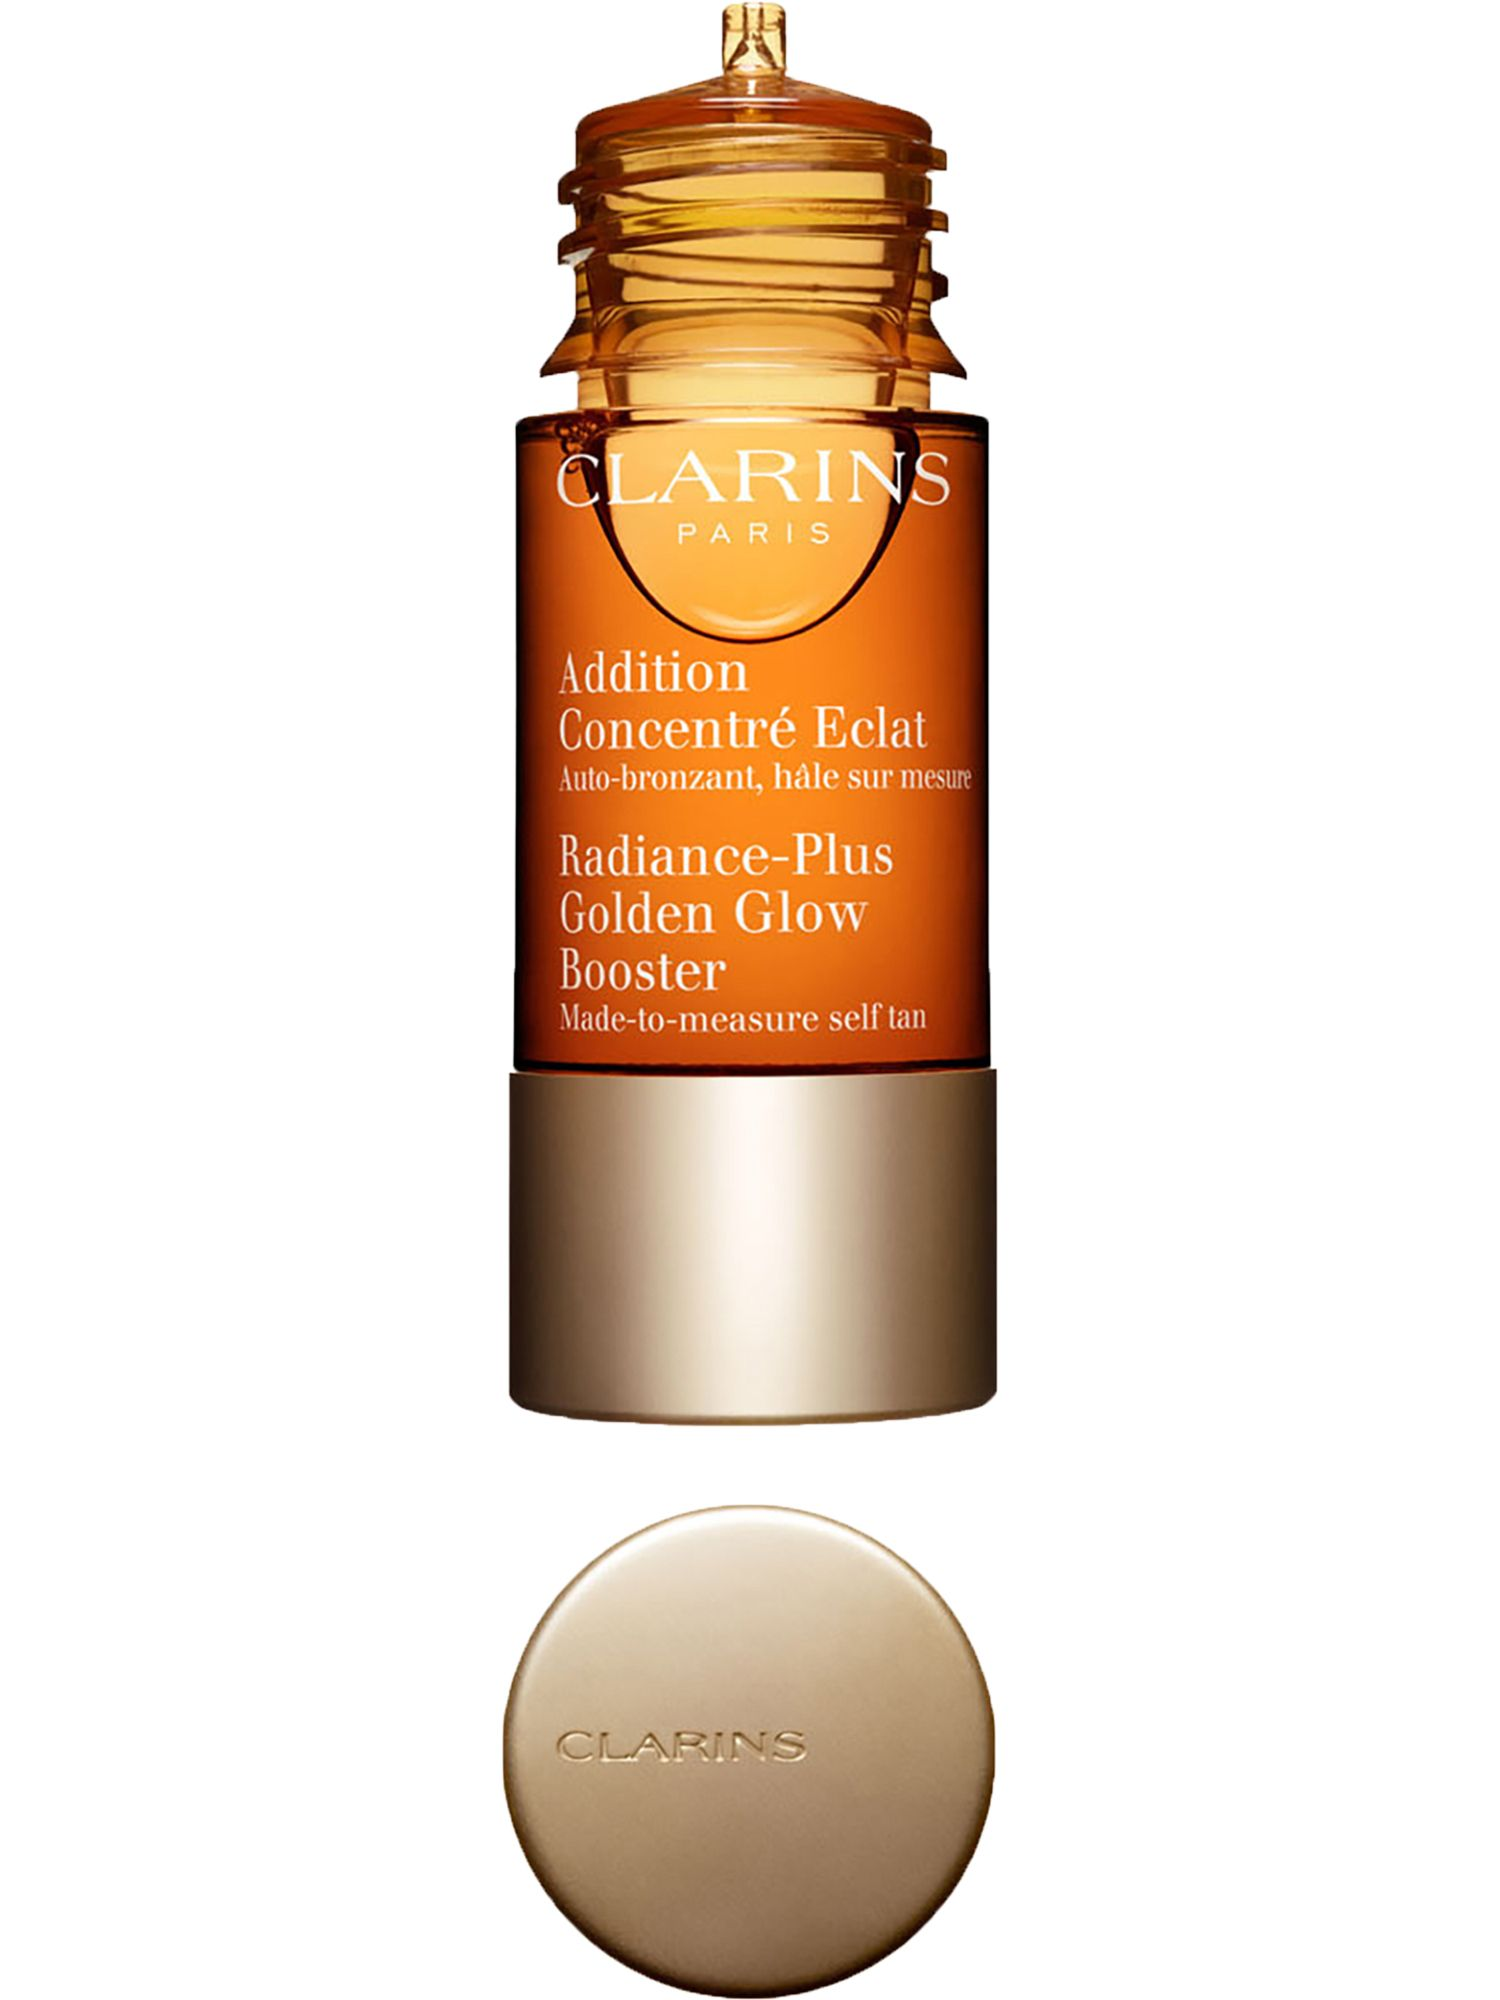 Blissim : Clarins - Auto-bronzant visage Addition Concentré Eclat - Auto-bronzant visage Addition Concentré Eclat